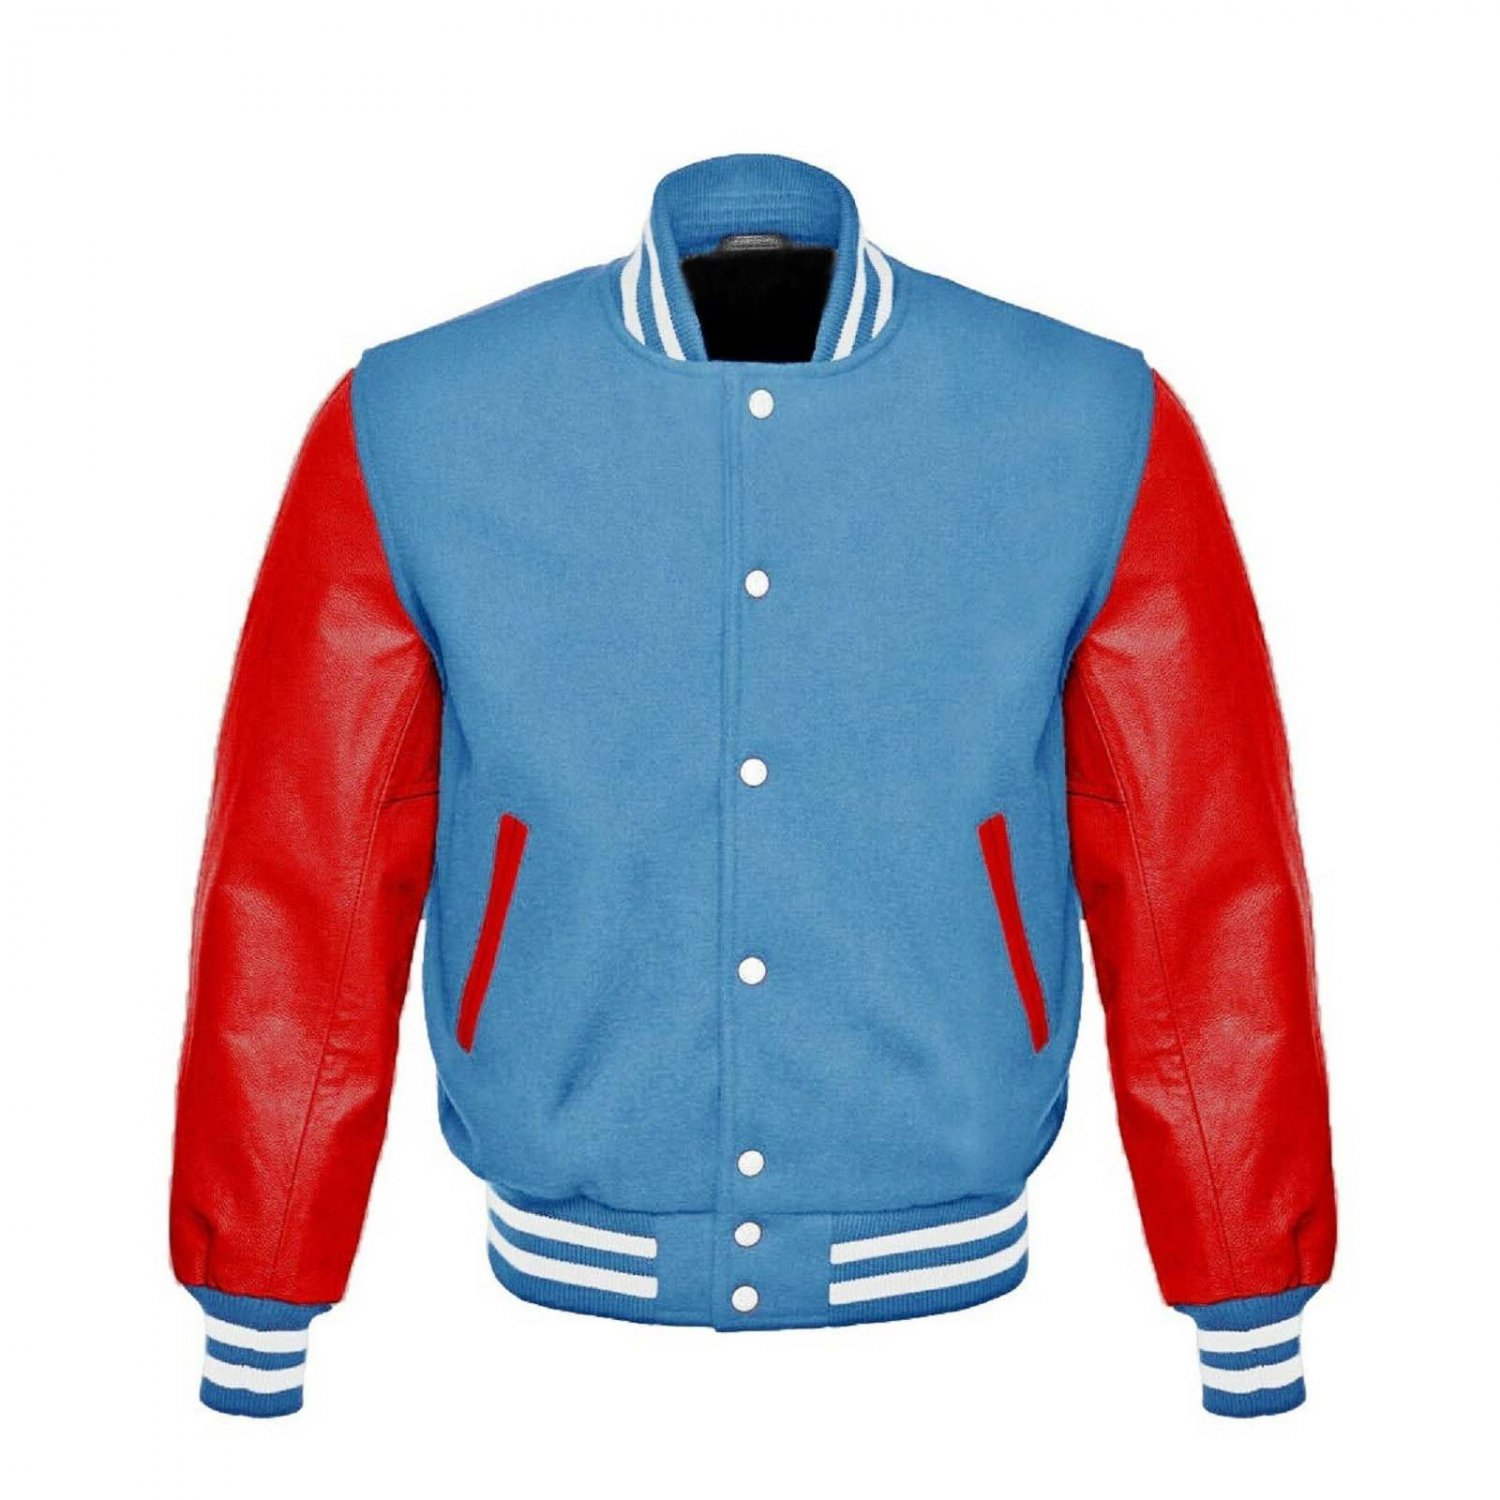 New DC Letterman Baseball Collage Lime Blue wool Red leather sleeves varsity jacket size 5XL